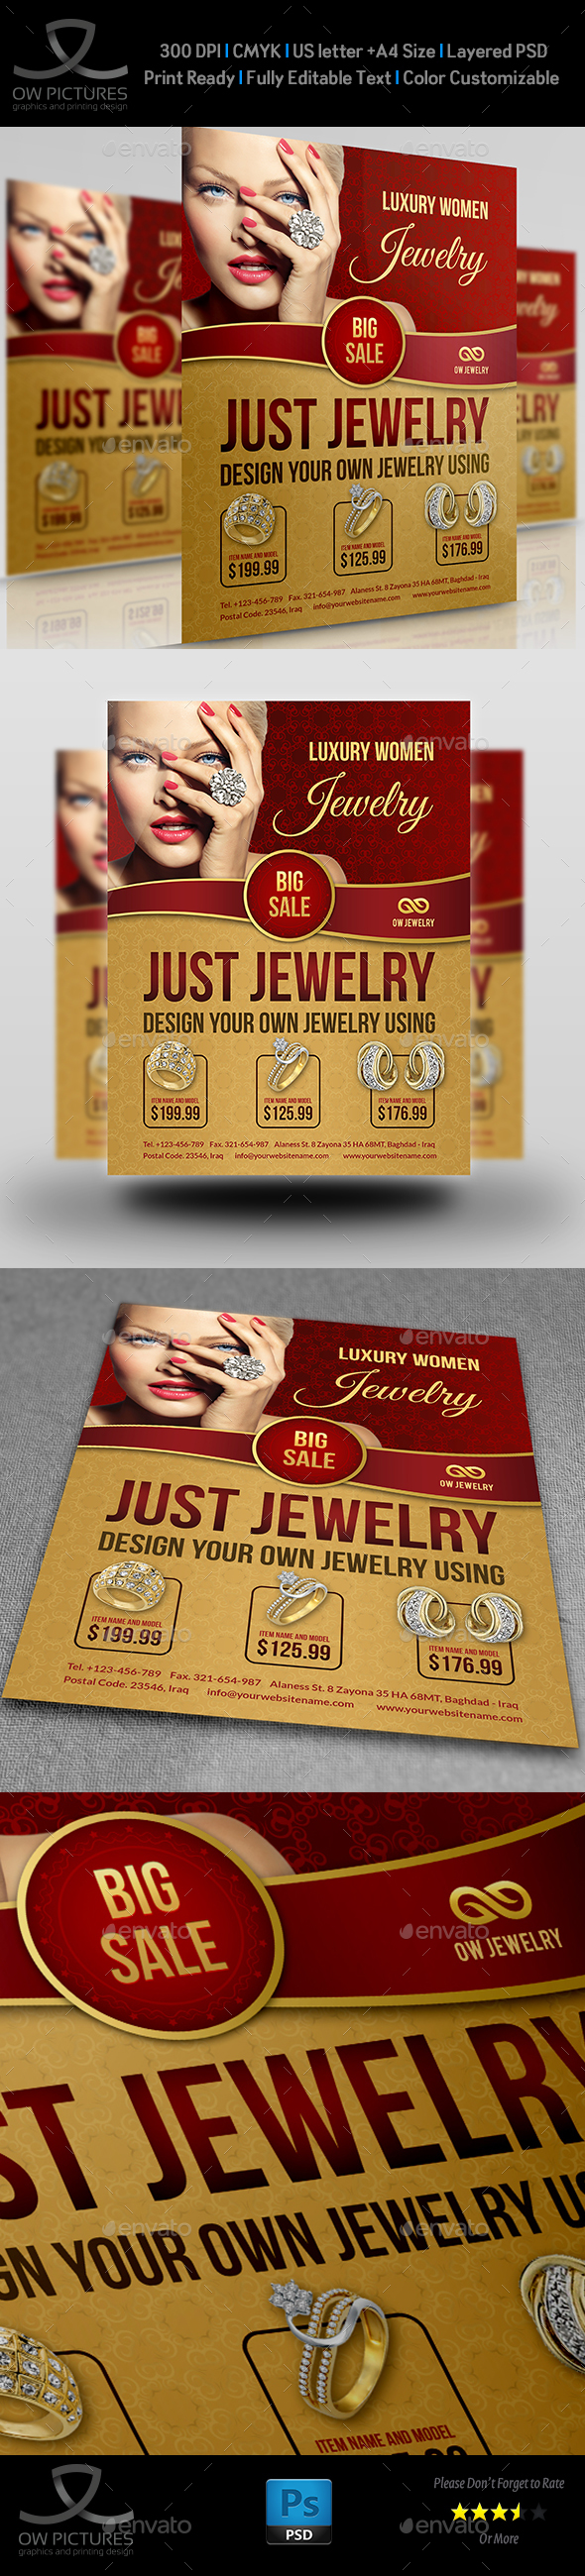 Jewelry Flyer Templates - Commerce Flyers